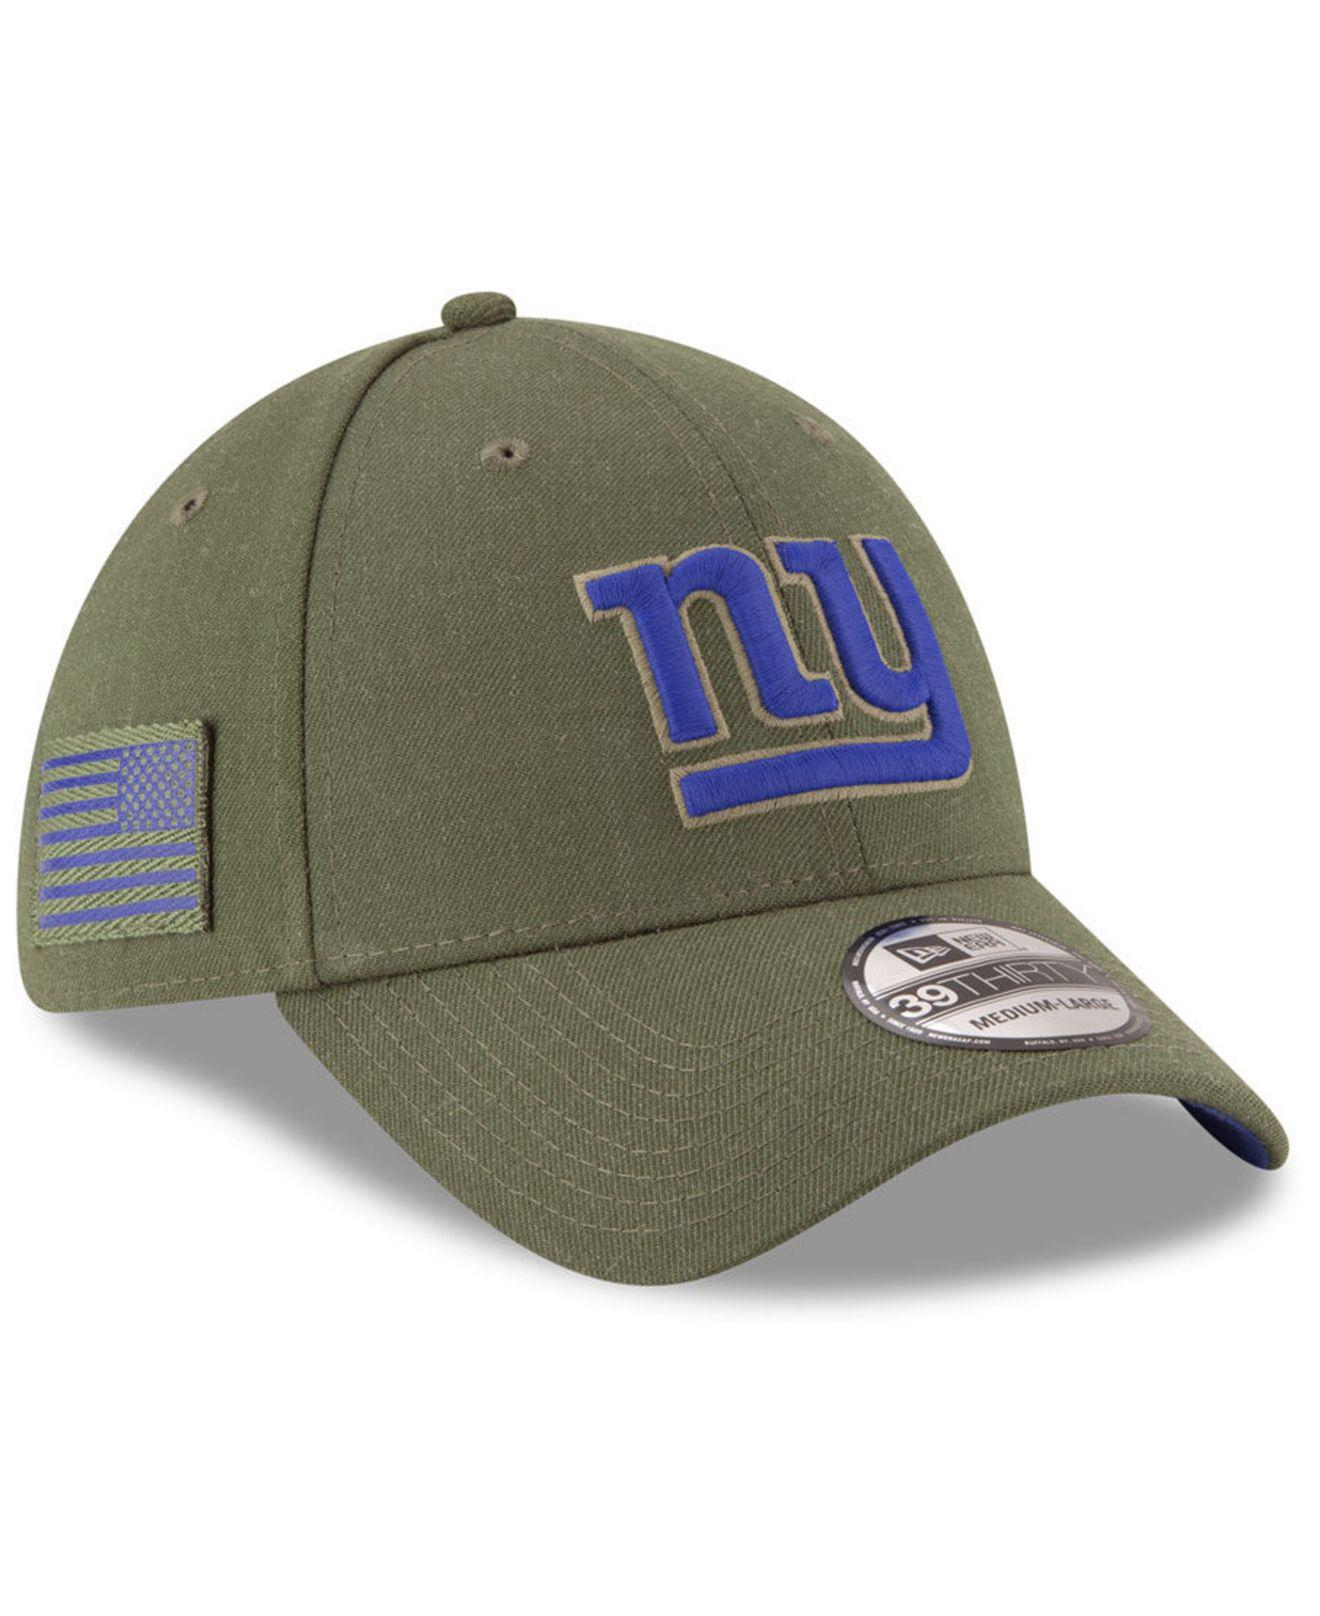 Lyst - Ktz New York Giants Salute To Service 39thirty Cap in Green ... a1f5278f8